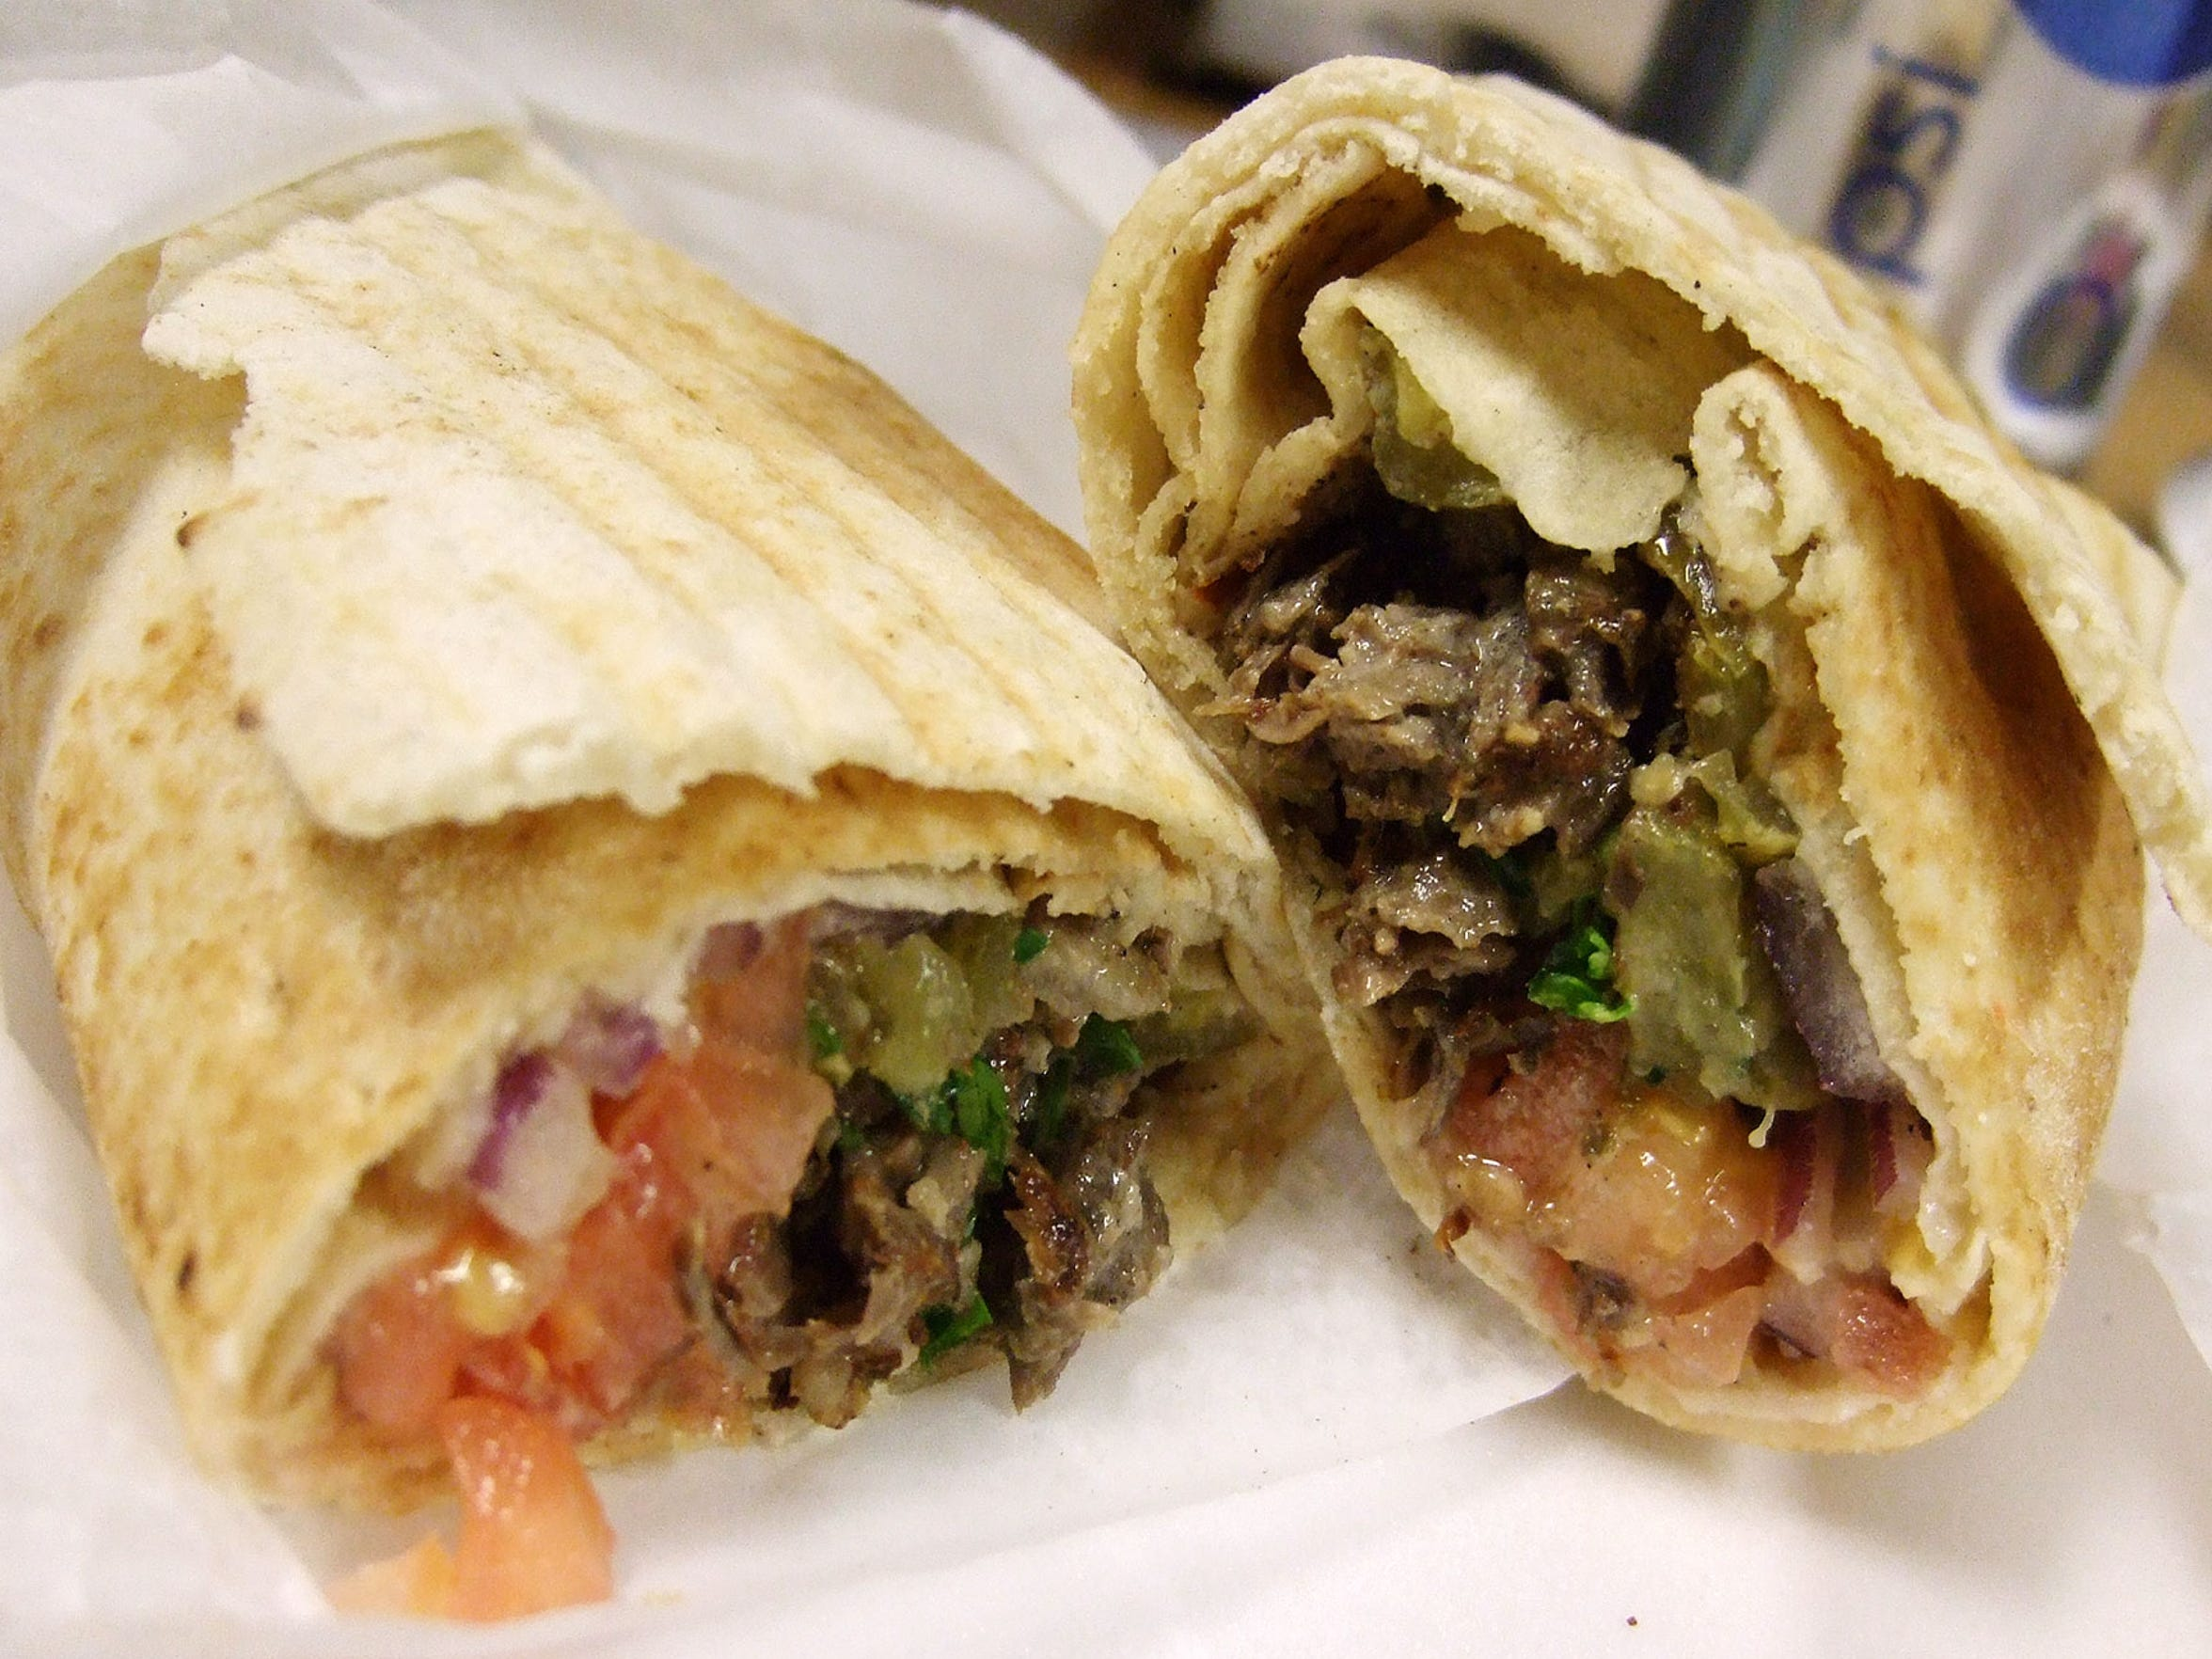 The beef shawarma sandwich at Al-Hana Restaurant in Phoenix.